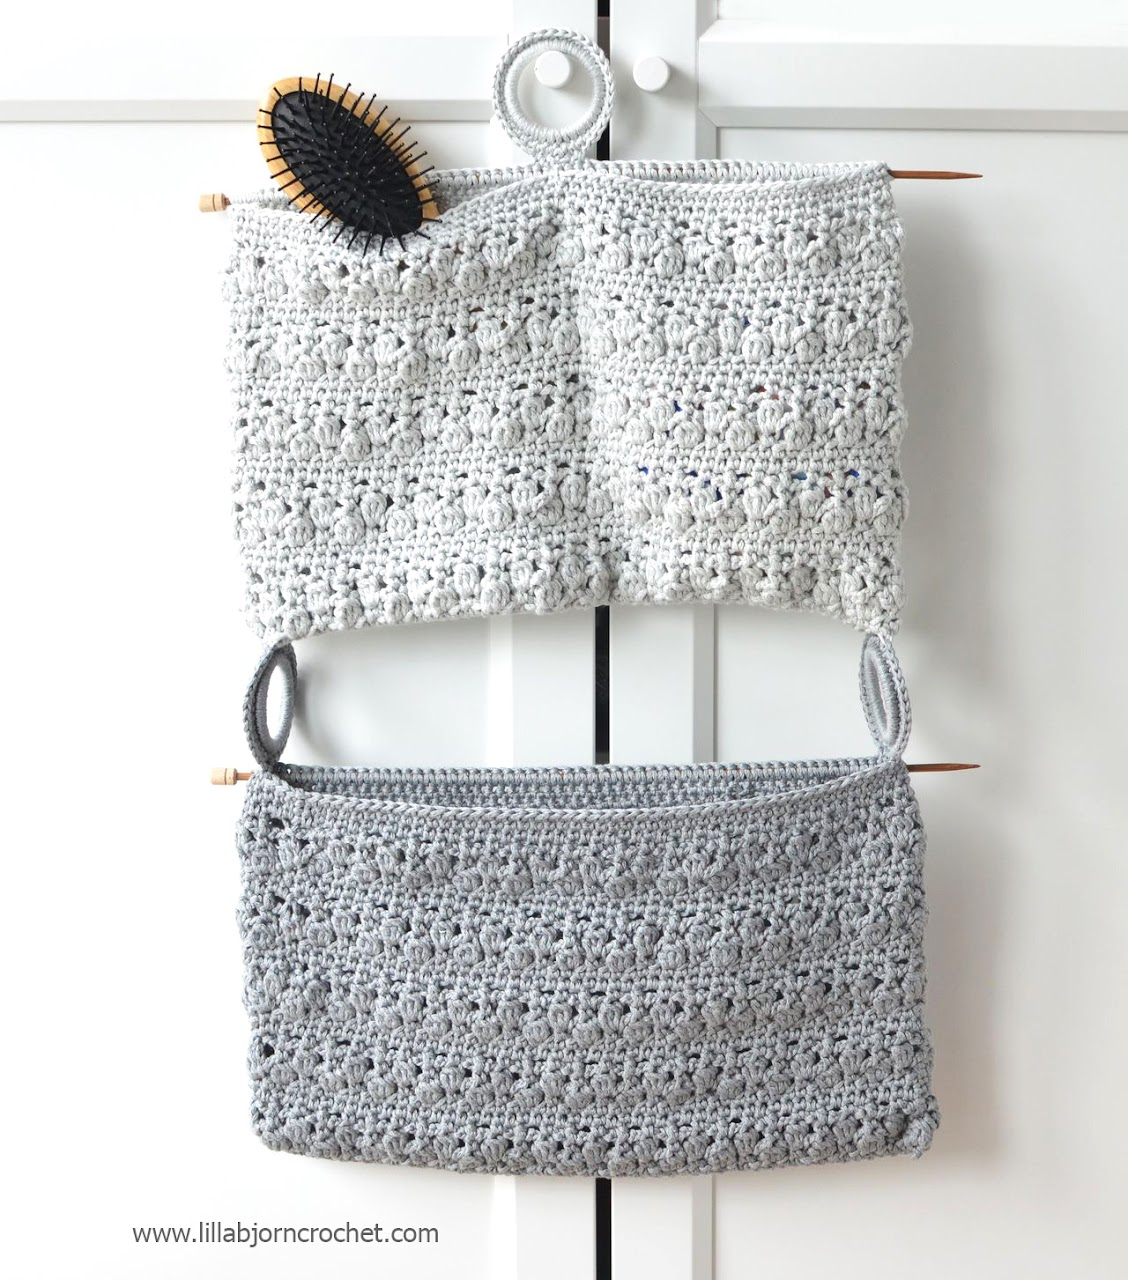 Crocheted Bathroom Organizer - a unique and stylish accessory for every bathroom. Designed by Lilla Bjorn Crochet